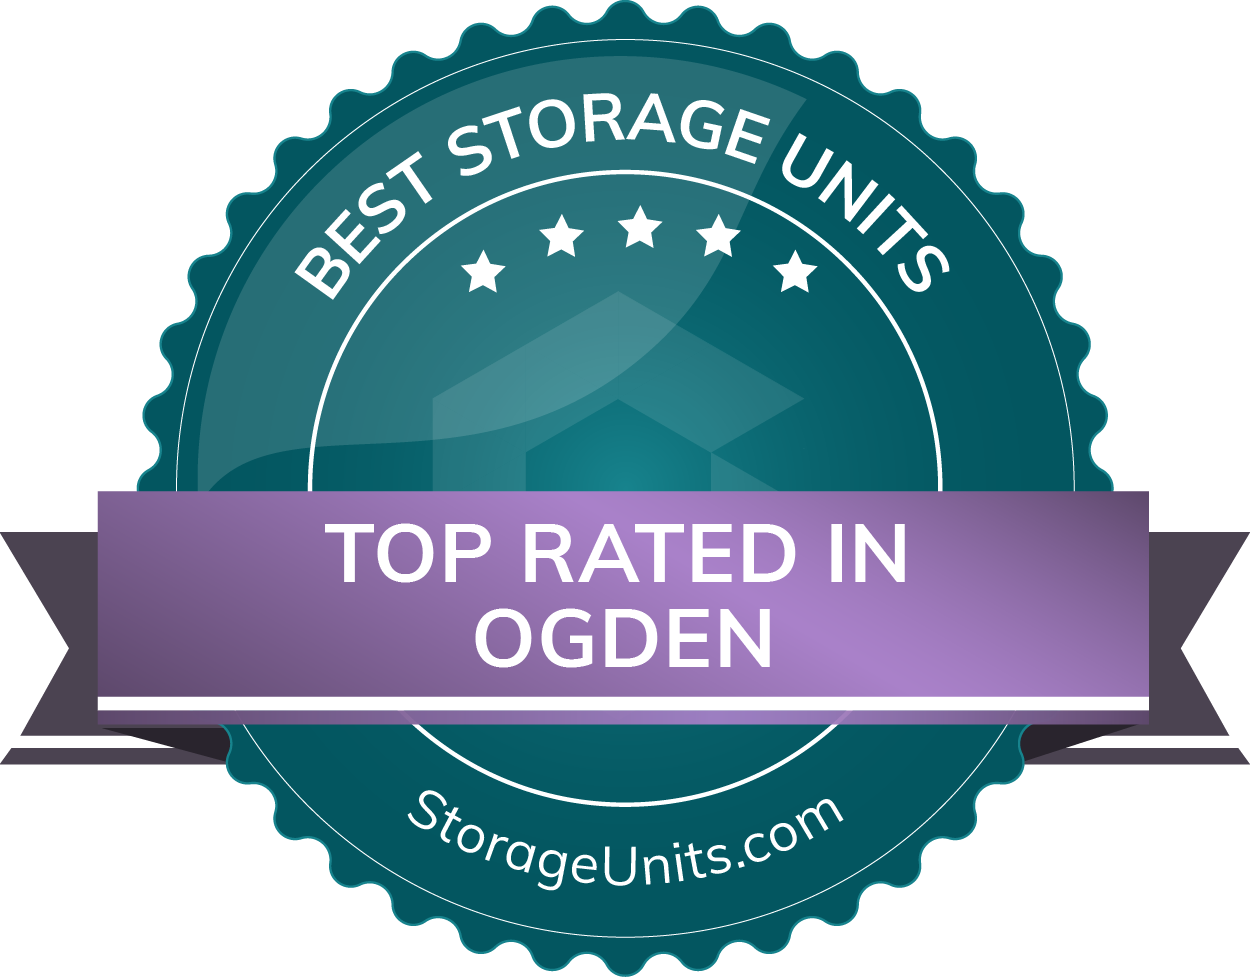 Top Rated in Ogden Award